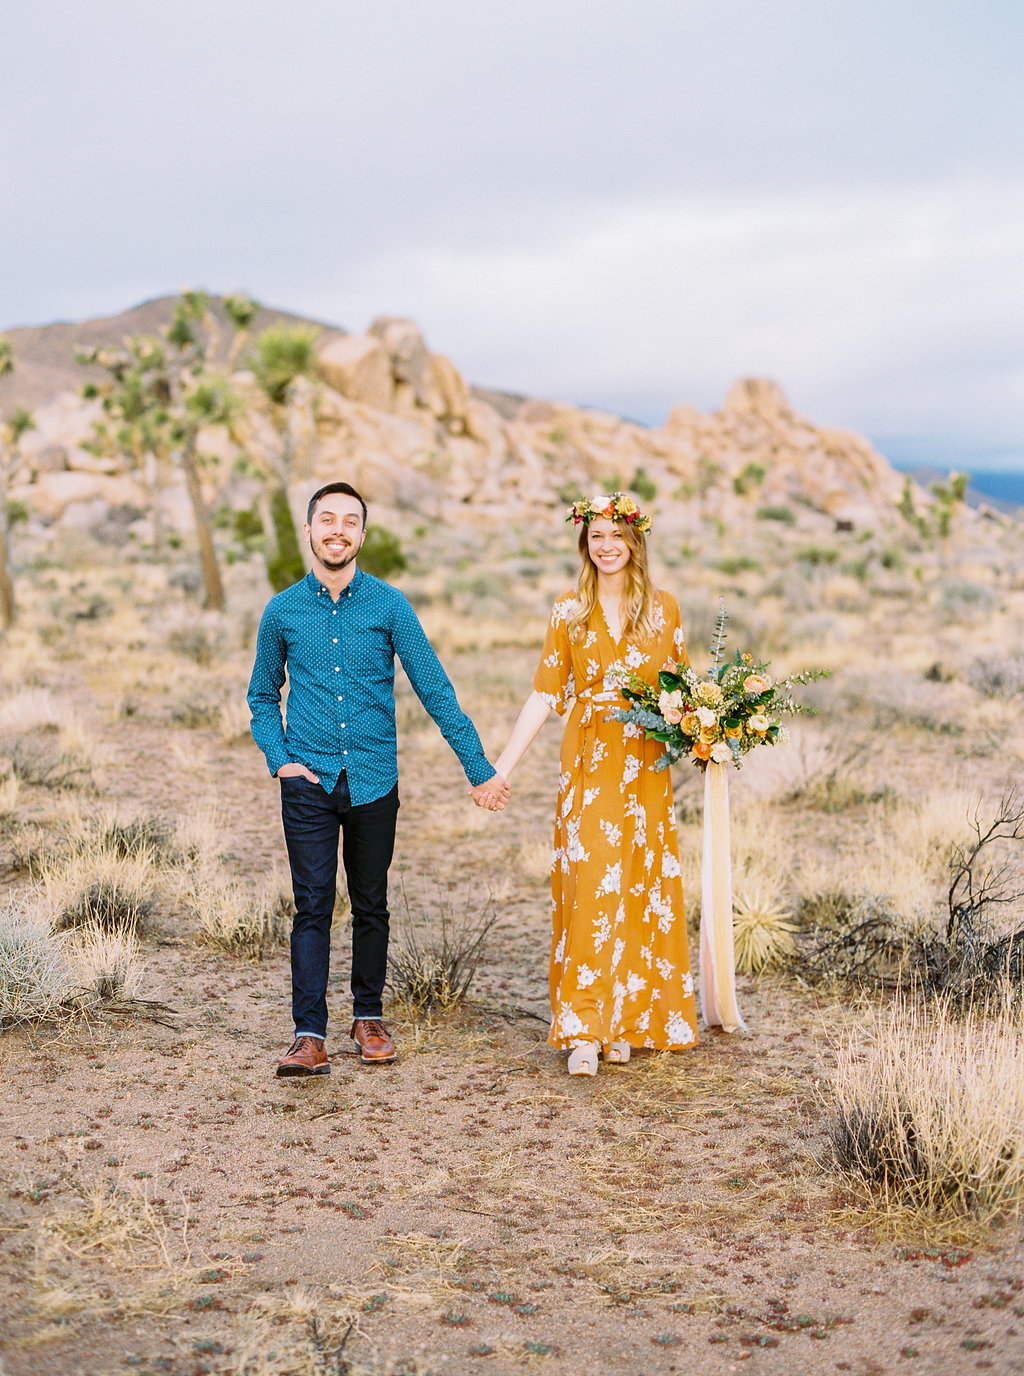 Joshua Tree Park Engagement Shoot with Boho vibes and Pretty floral bouquet